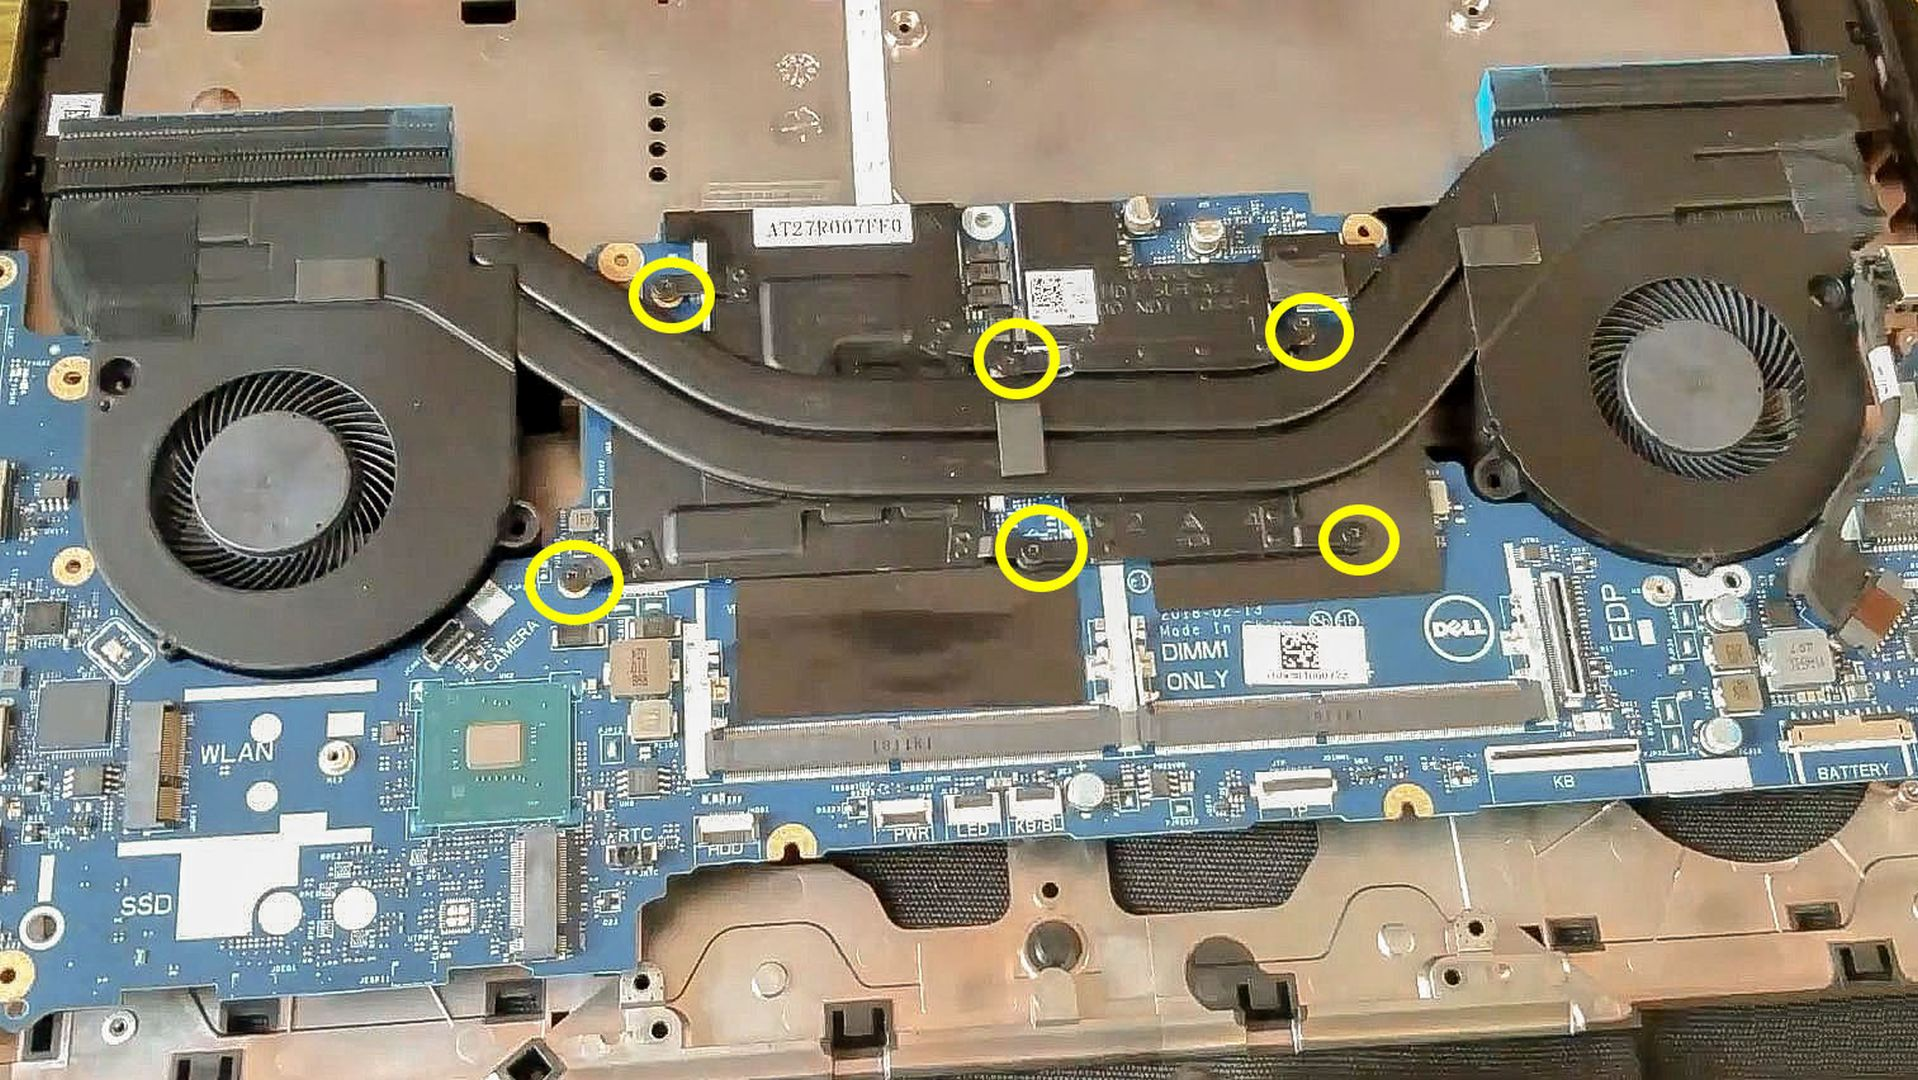 Disassembly Guide of Dell G5 5587, Dell G7 7588